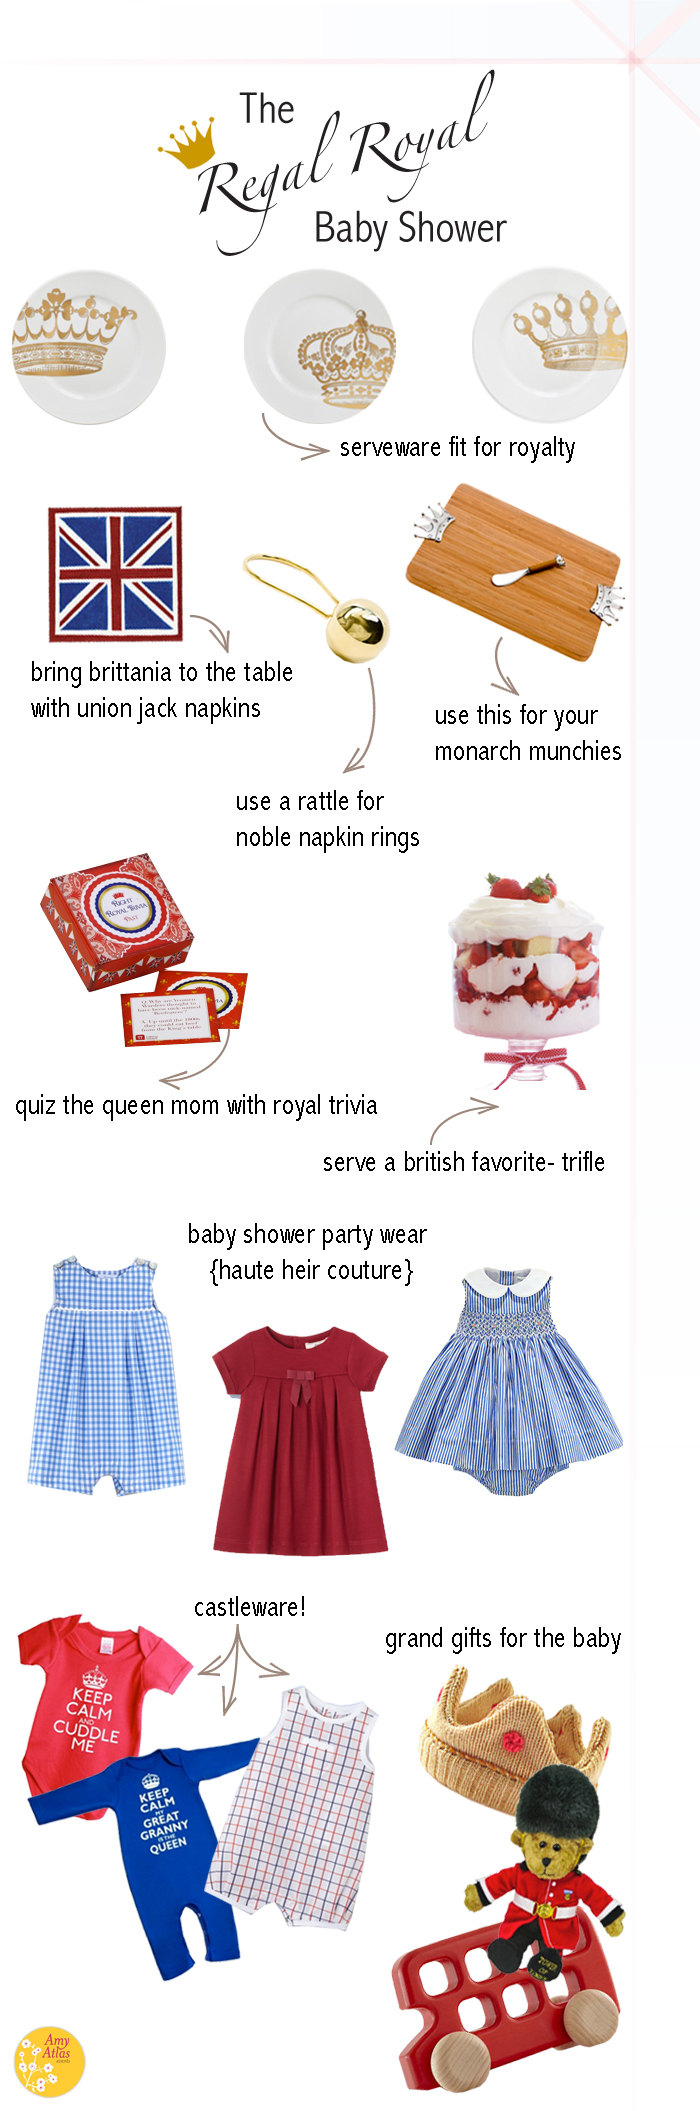 how to throw a regal royal baby shower amy atlas events